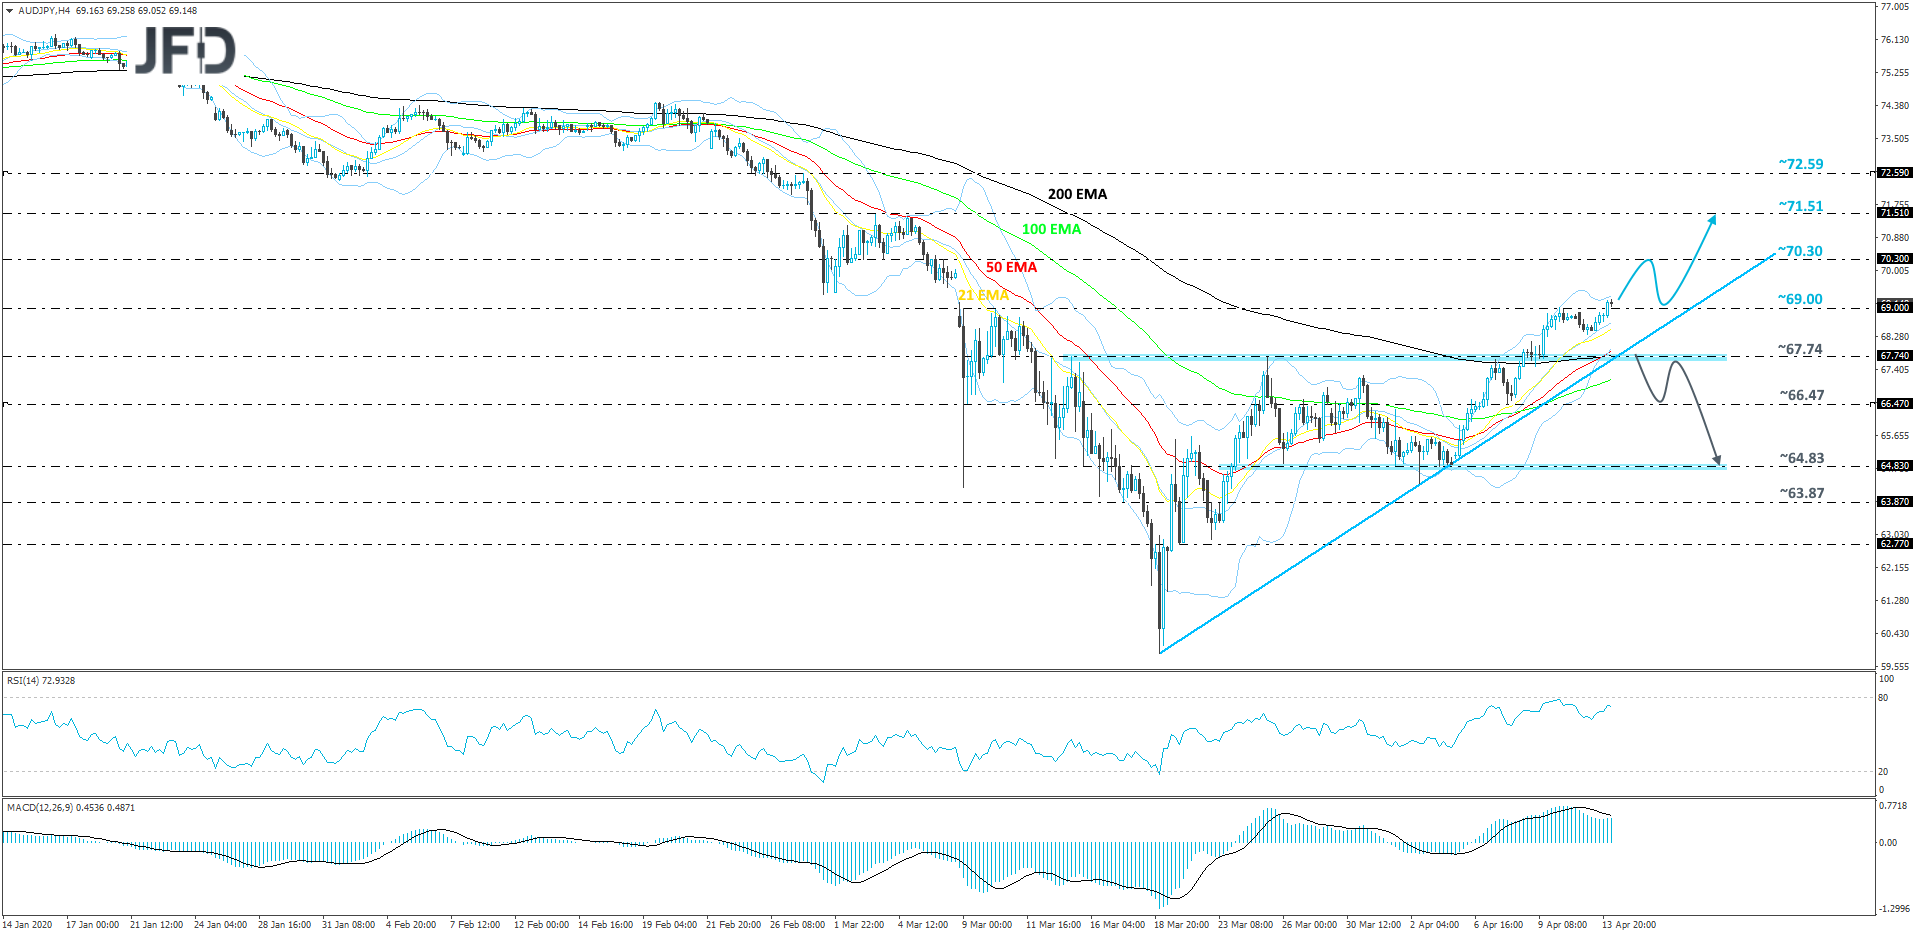 AUD/JPY 4-hour chart technical analysis